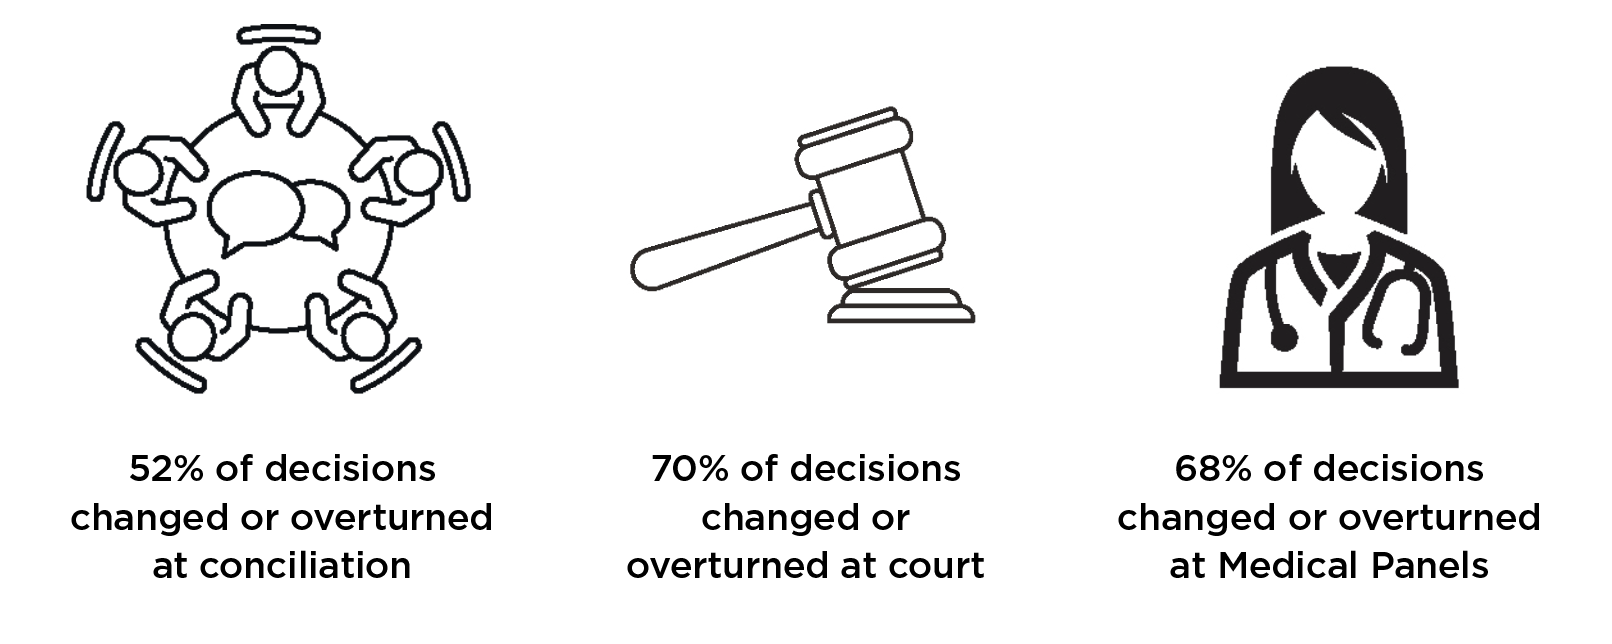 Image showing rate of change of decisions`